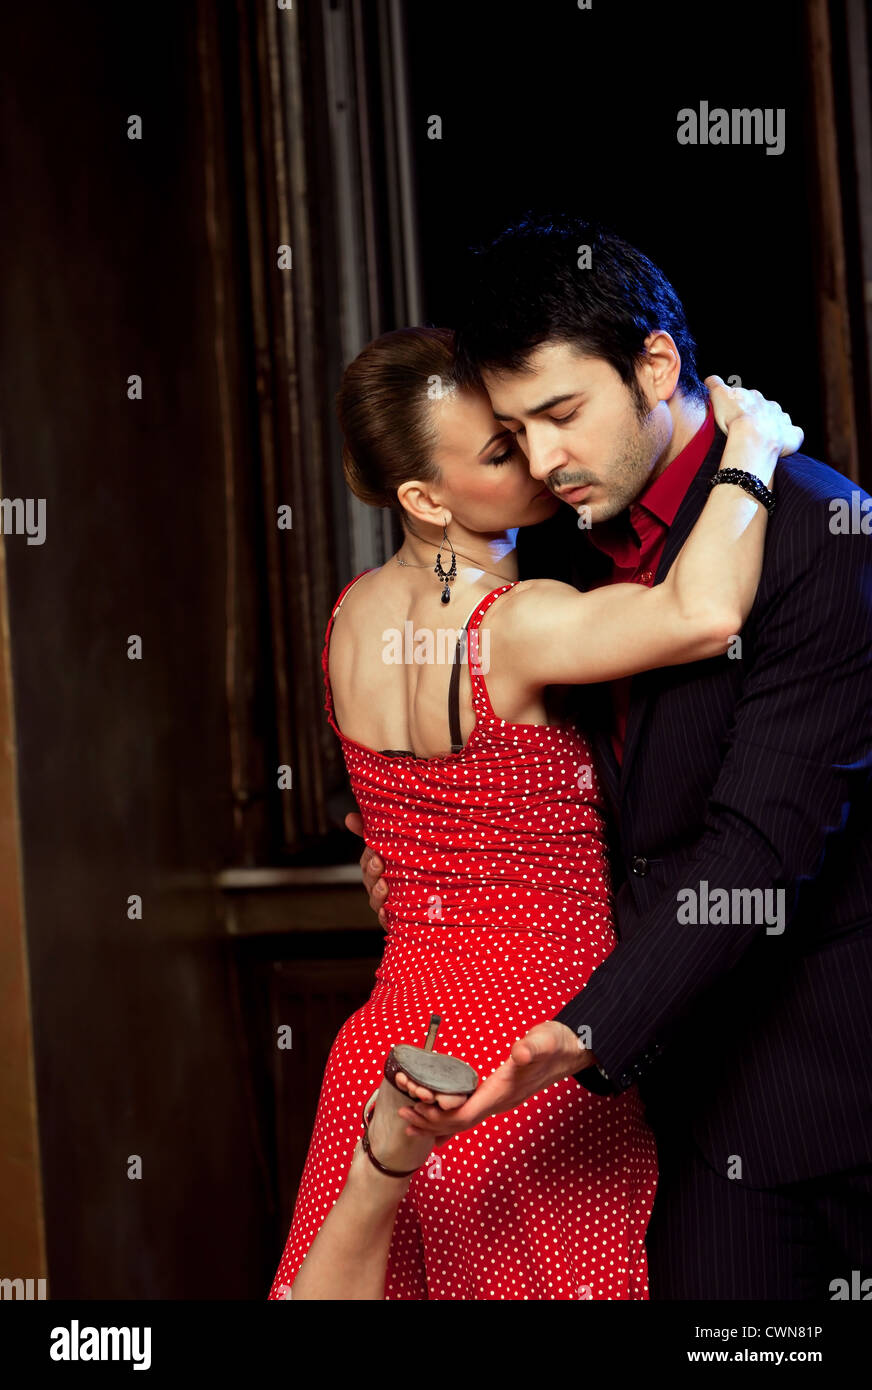 Beautiful dancers performing an argentinian tango. Please check similar images from my portfolio. - Stock Image